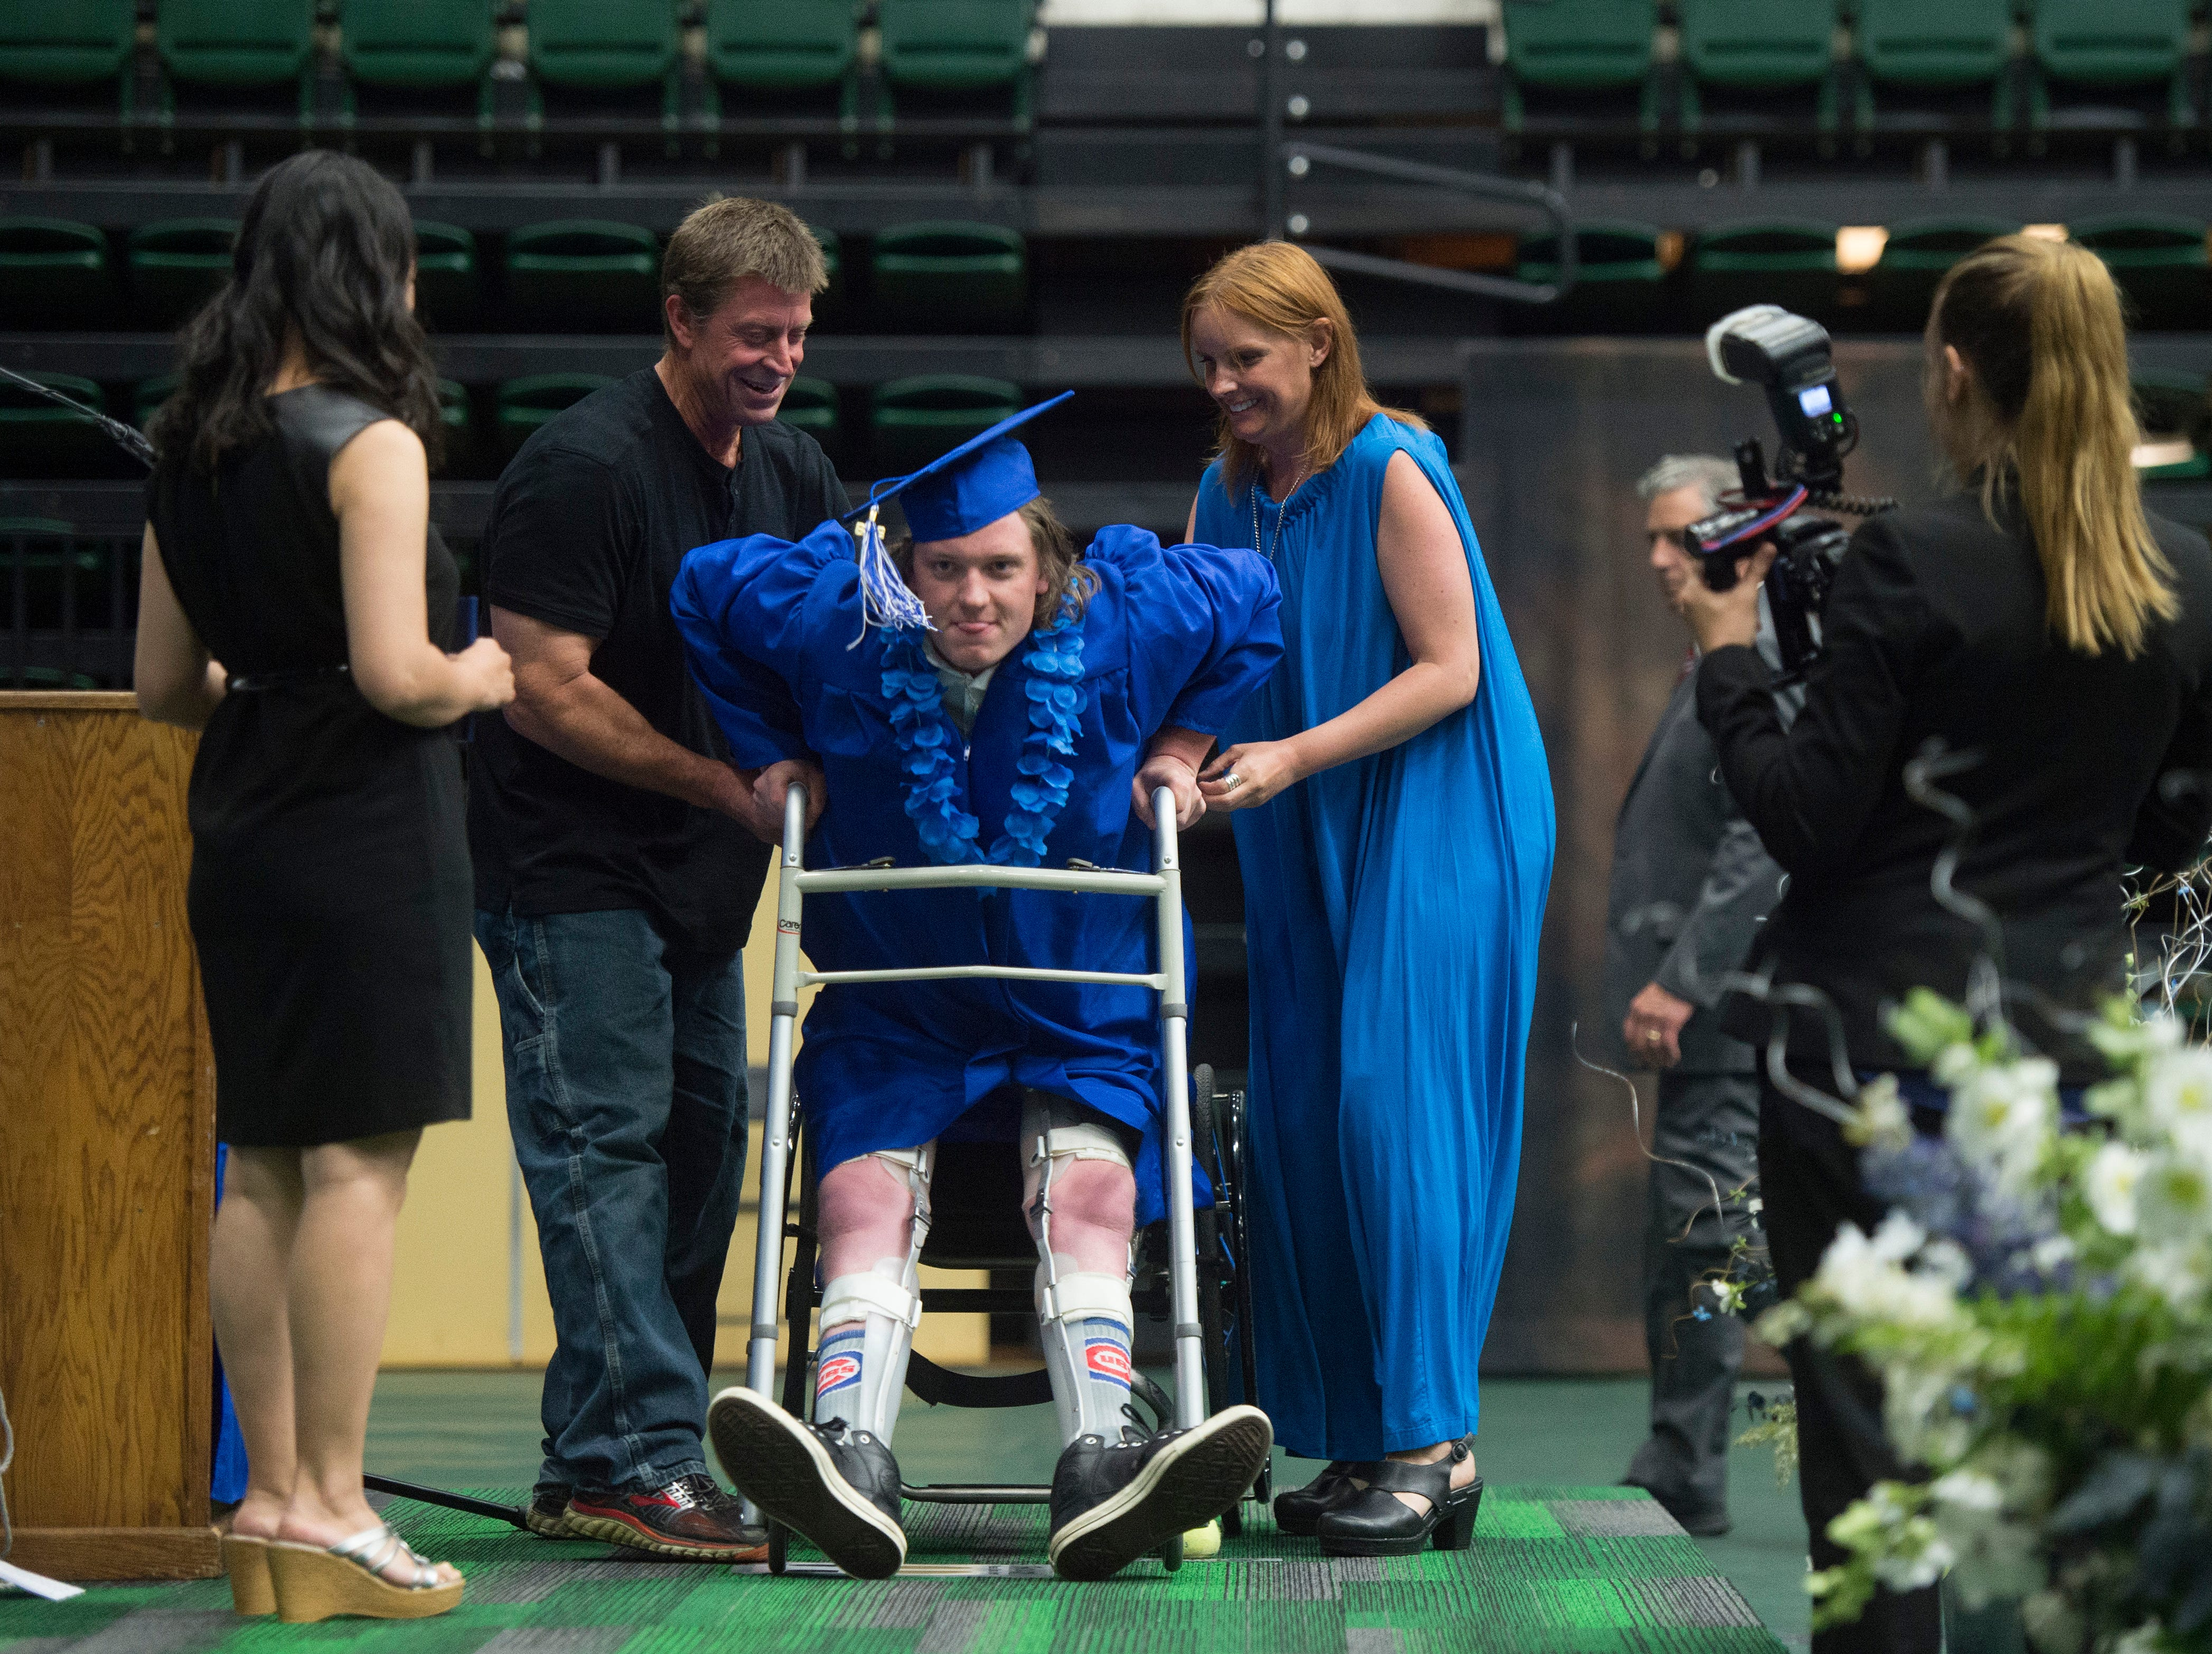 Poudre High School graduate Connor Walsh uses a walker to help him stand to receive his high school diploma during commencement at Moby Arena on Saturday, May 26, 2018. Walsh was paralyzed after being hit by a vehicle while he was walking to class in 2015.